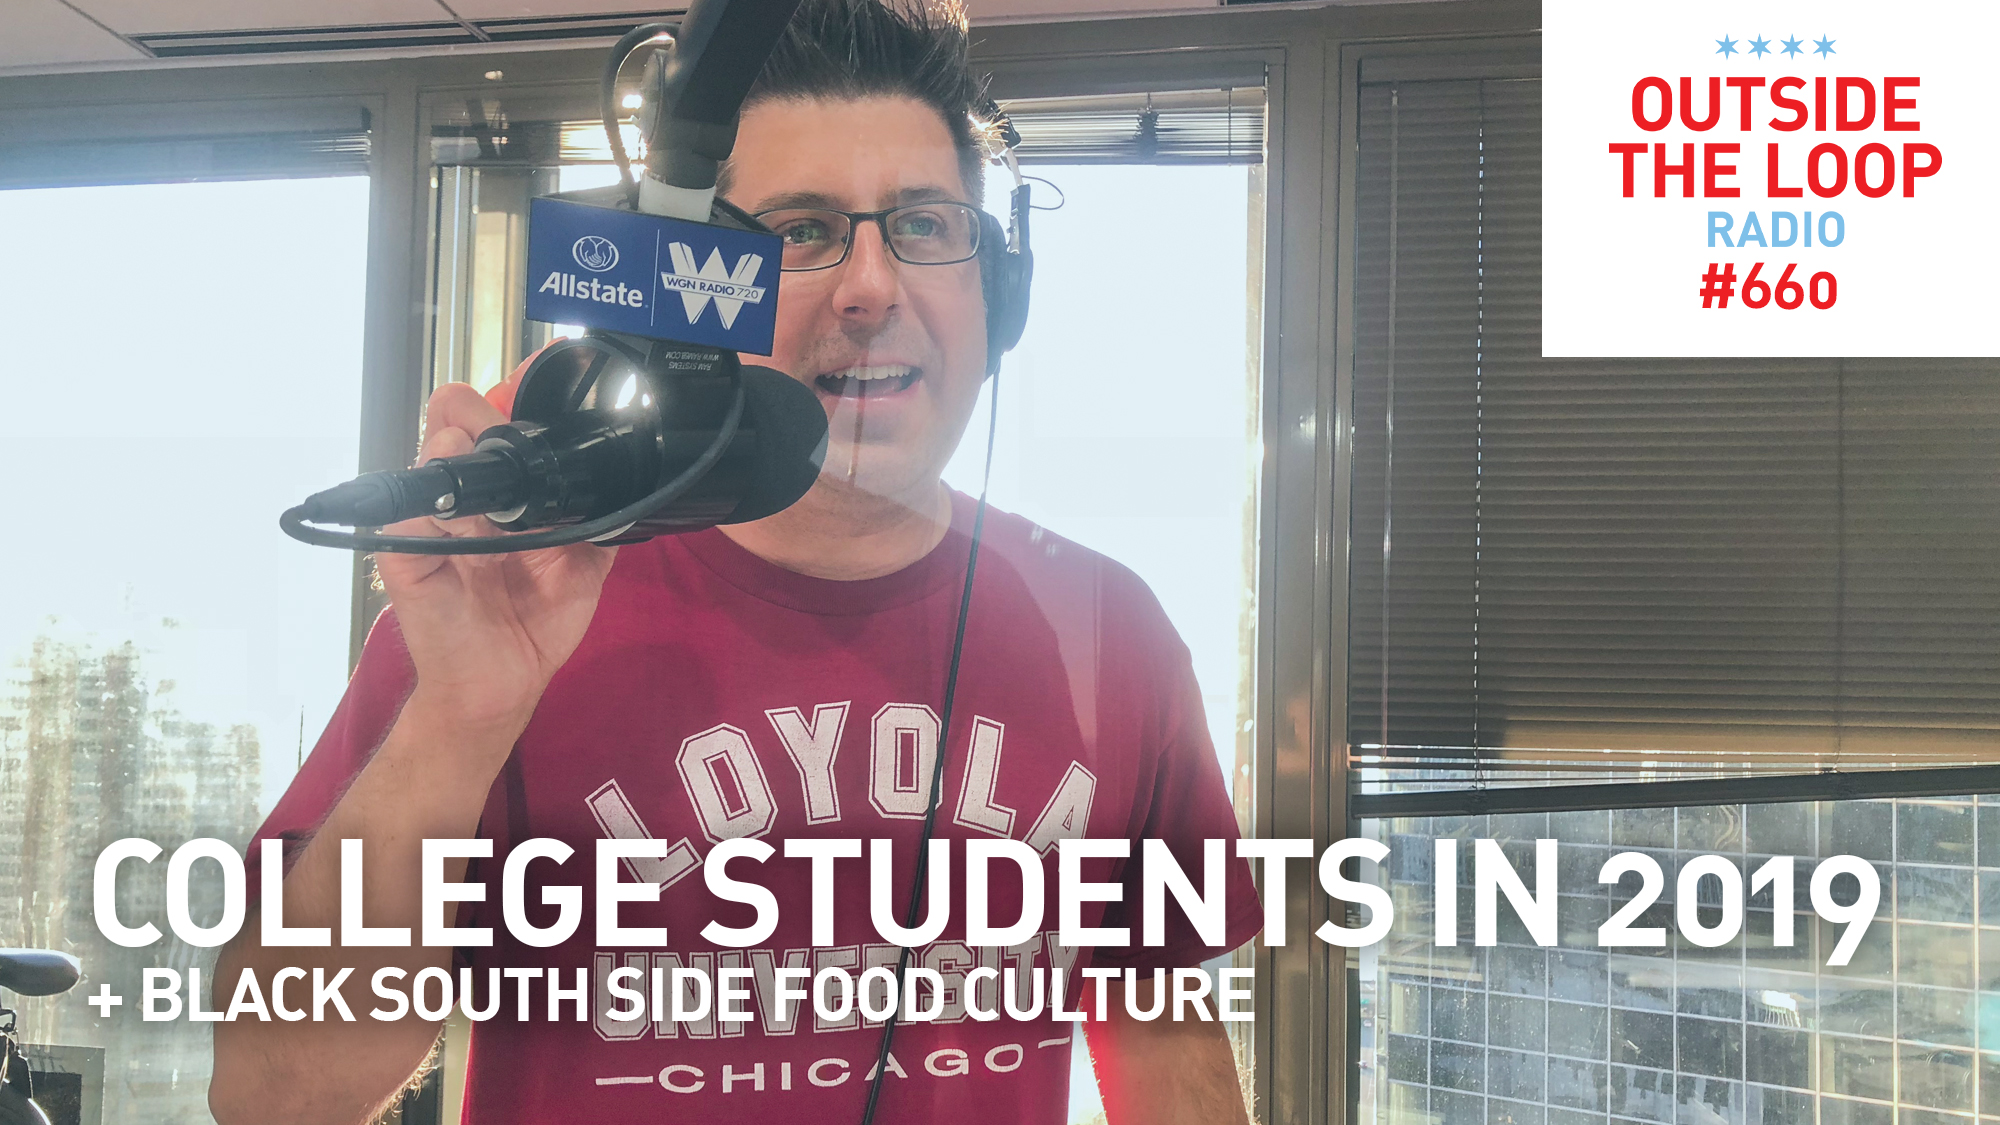 Mike Stephen discusses the state of college students in 2019 while representing his alma mater Loyola University Chicago.